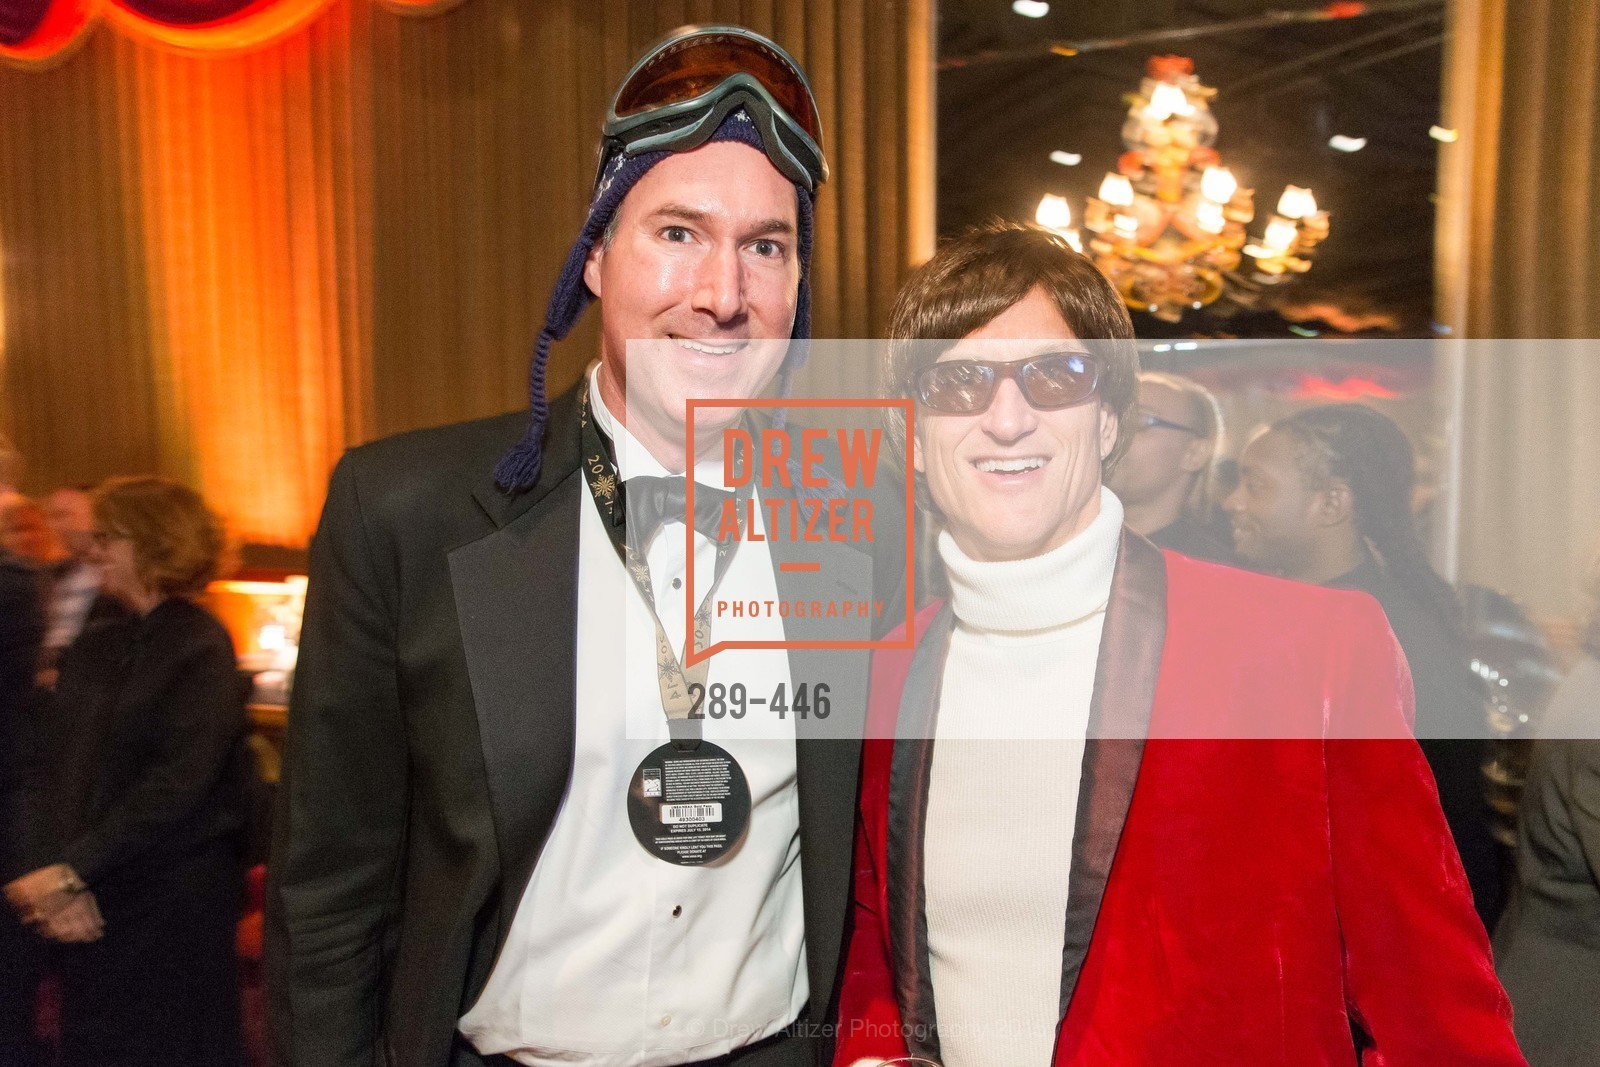 Andy Kelly, Tod Francis, U.S. Ski and Snowboard Foundation's Snow Ball, Bimbo's 365 Club. 1025 Columbus Ave, November 7th, 2015,Drew Altizer, Drew Altizer Photography, full-service event agency, private events, San Francisco photographer, photographer California